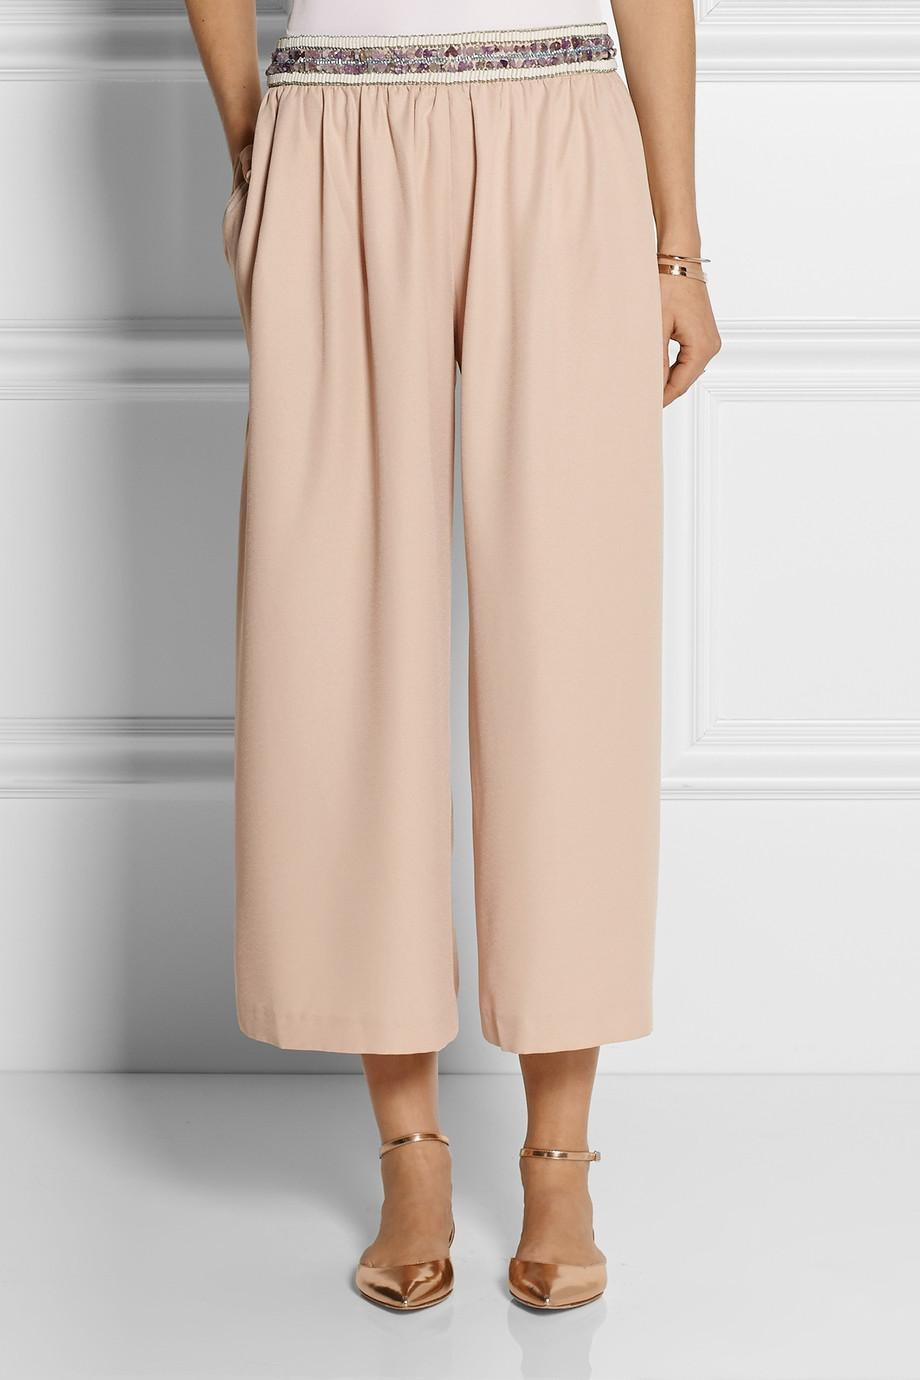 The long and the short of it: culottes make the cut for #SS15  http://t.co/NaCPnYi2QX http://t.co/XY45ClvSrm